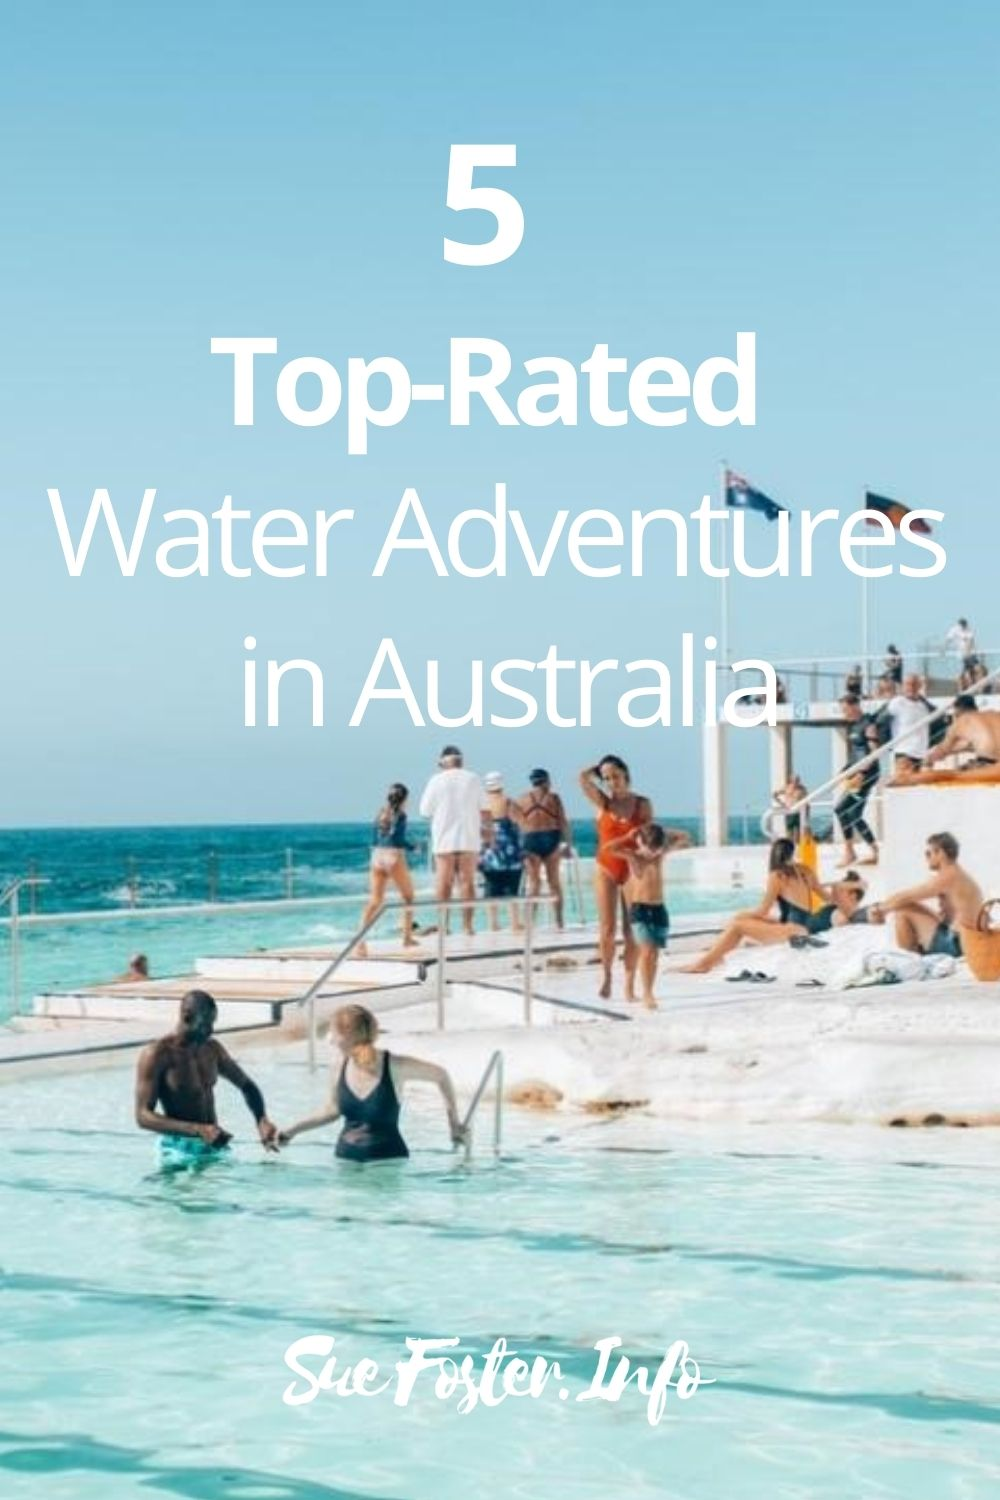 5 fantastic water adventures one can experience when visiting Australia.